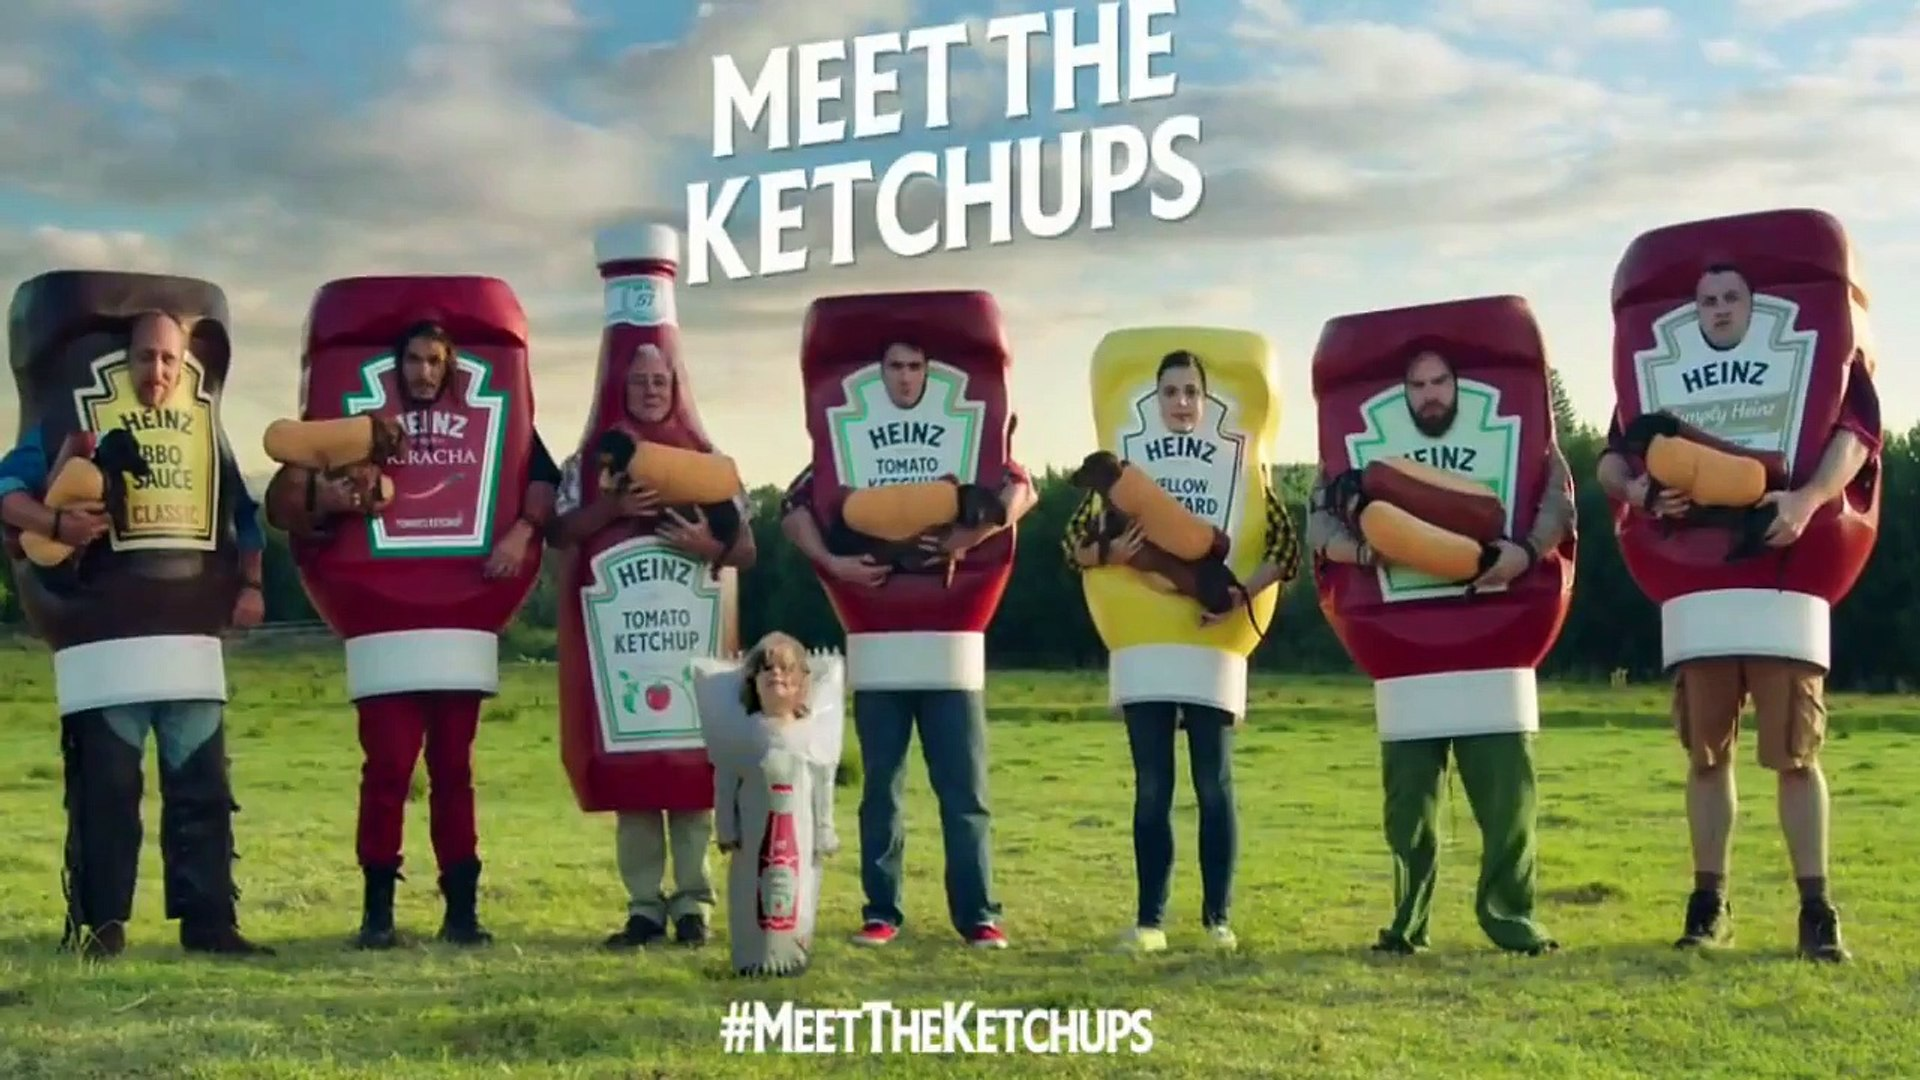 HEINZ Ketchup Super Bowl Commercial 2016 Super Bowl Ads - Hot Dog Commercial -